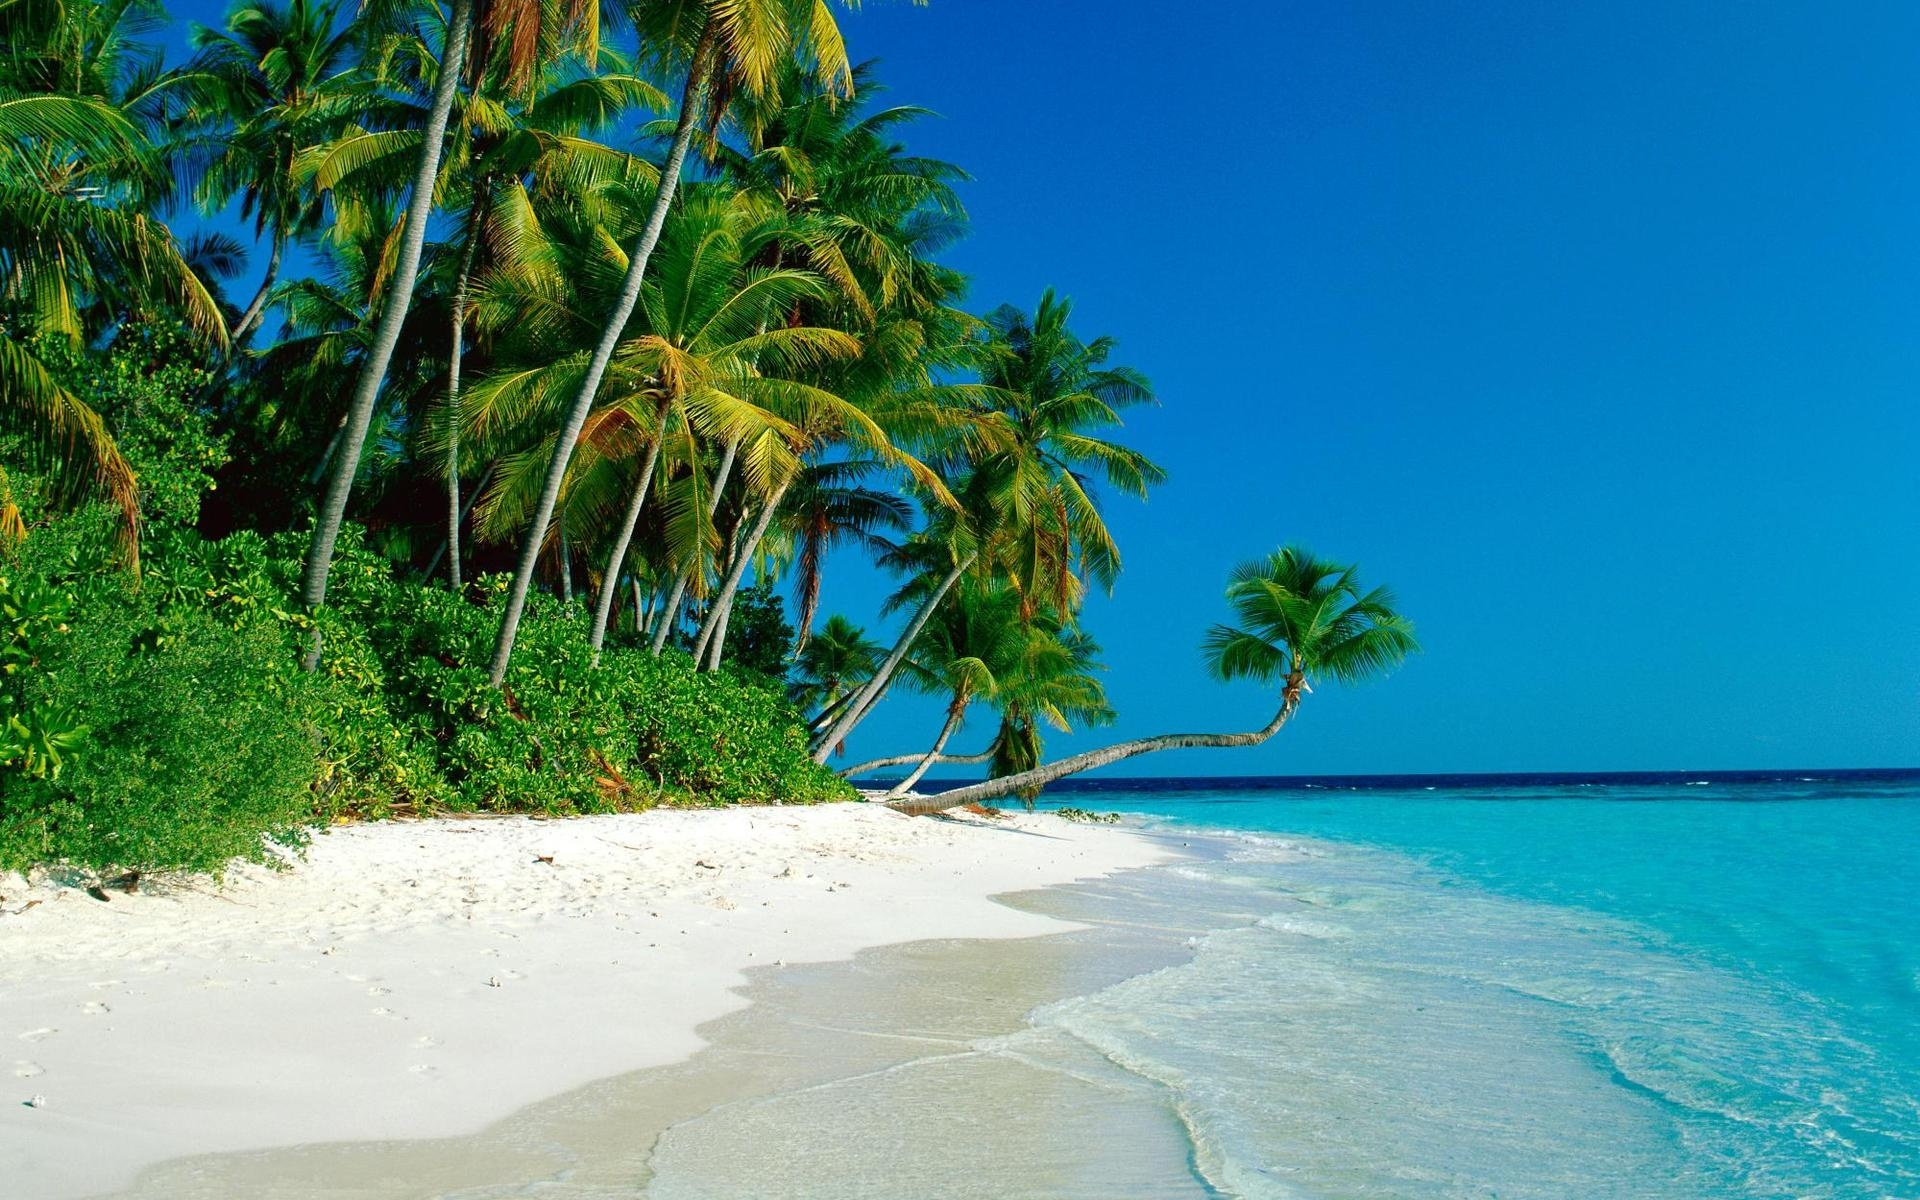 Tropical Beach Cook Islands Wallpaper Xpx 1920x1200px